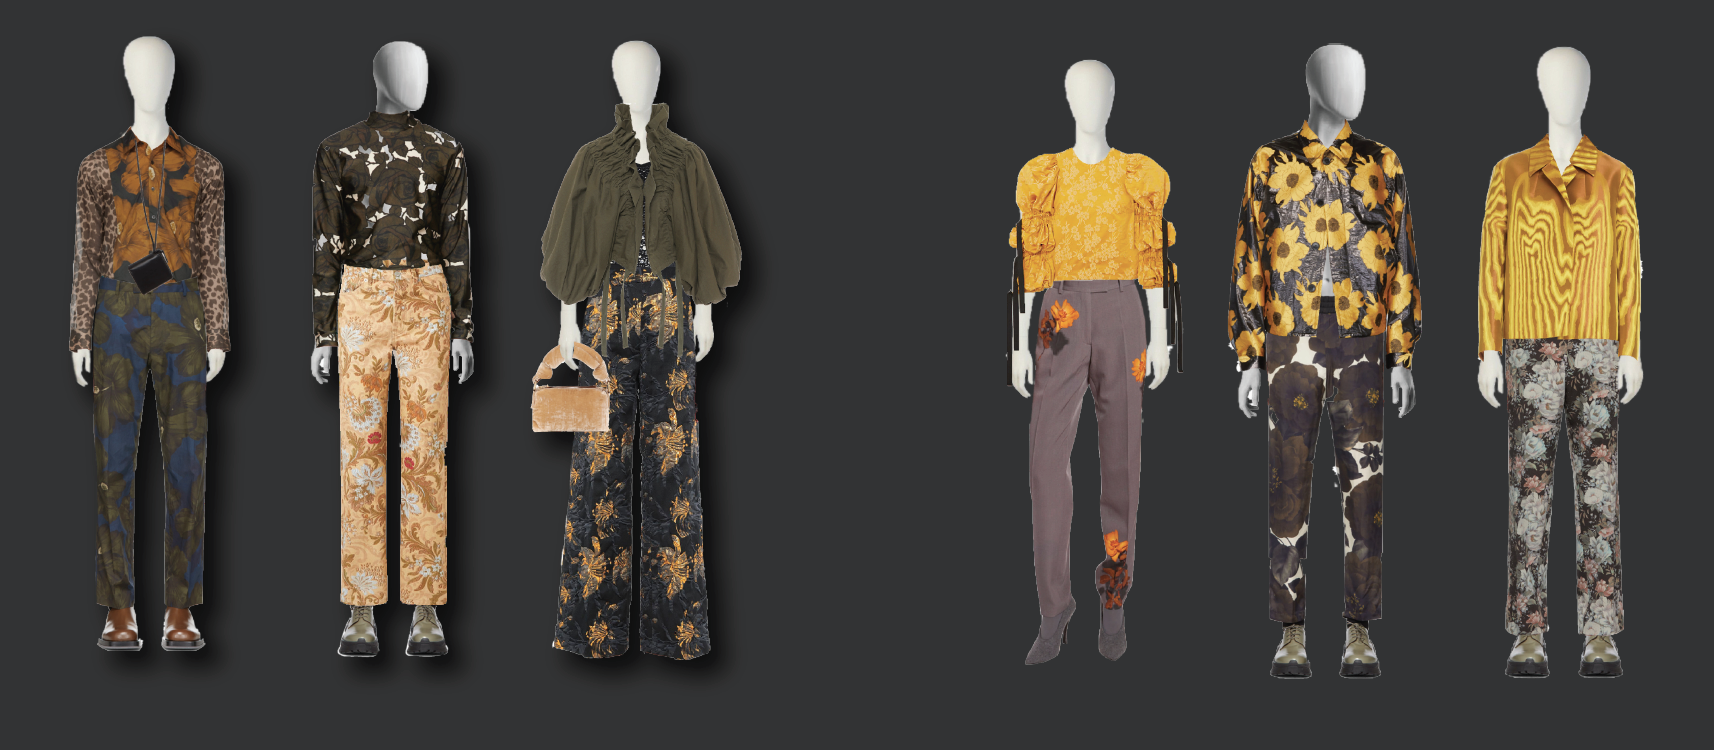 Dries Van Noten Digital Styling